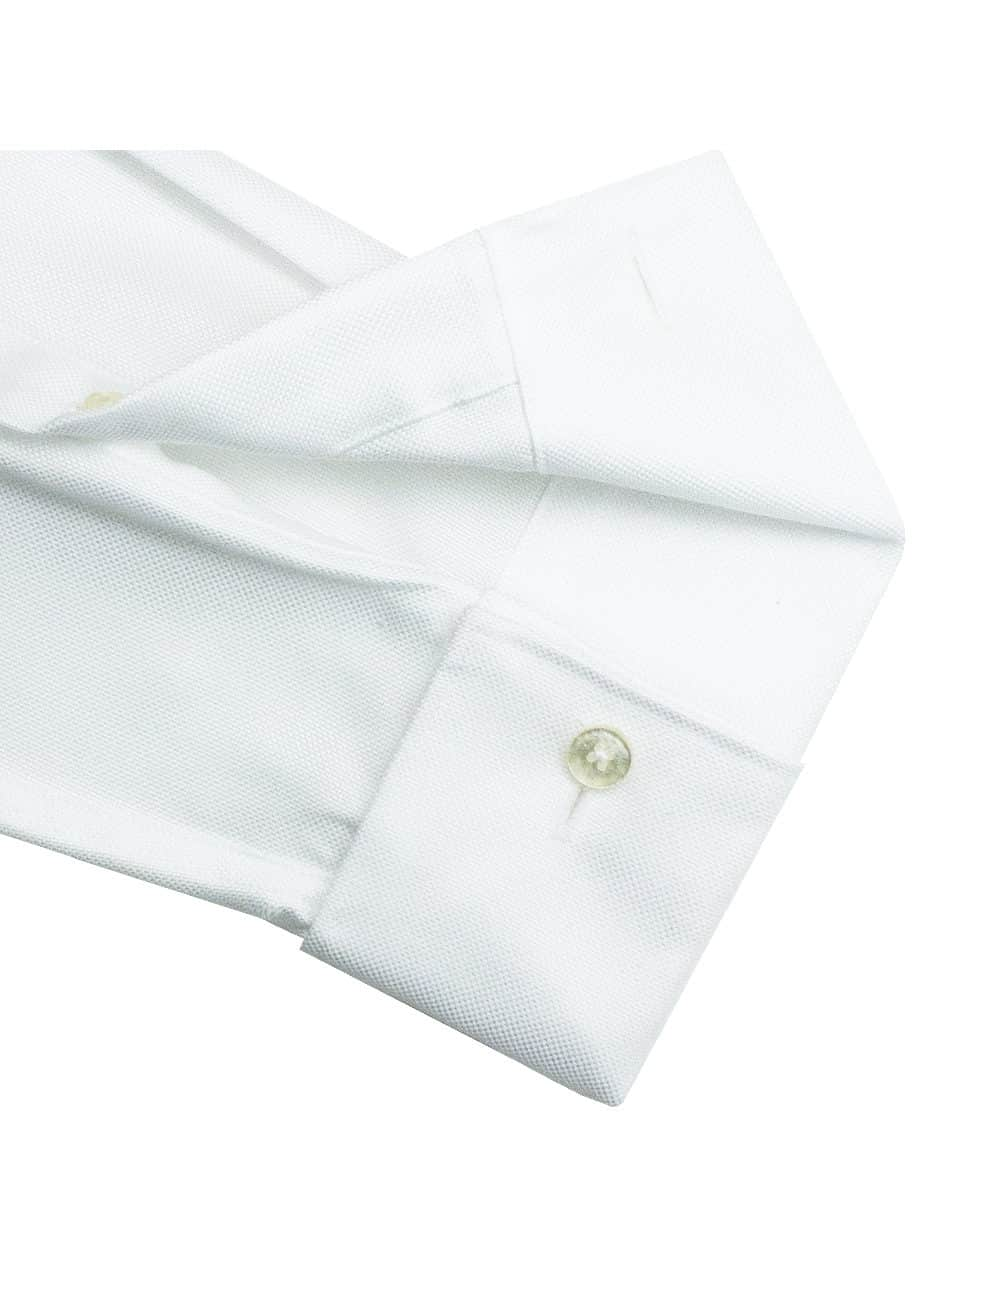 Slim Fit Double Ply Non-iron 100% Premium Cotton Solid White Long Sleeve Double Cuff Shirt with Long Lasting White Finishing SF2D1.NOS